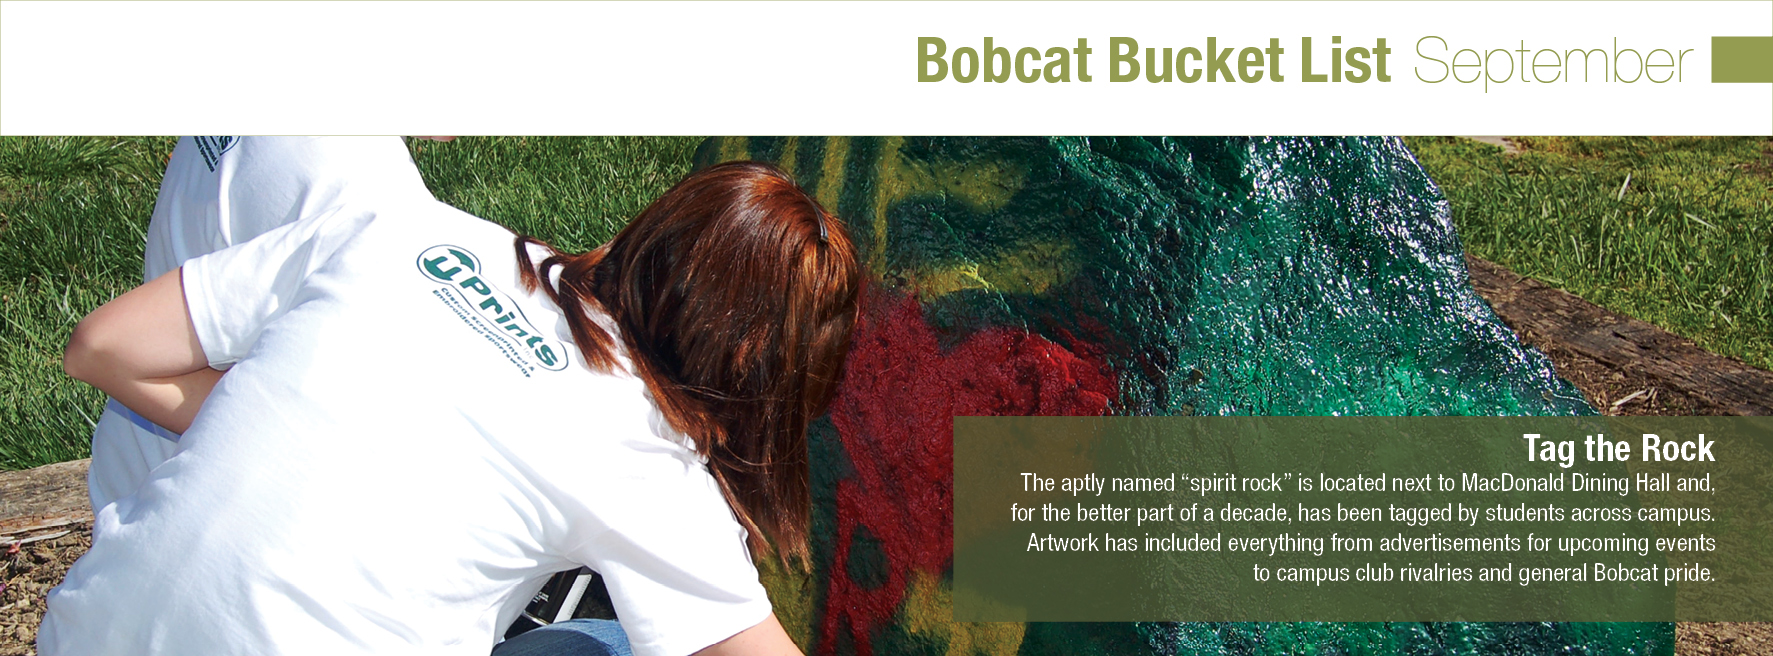 Bobcat Bucket List September